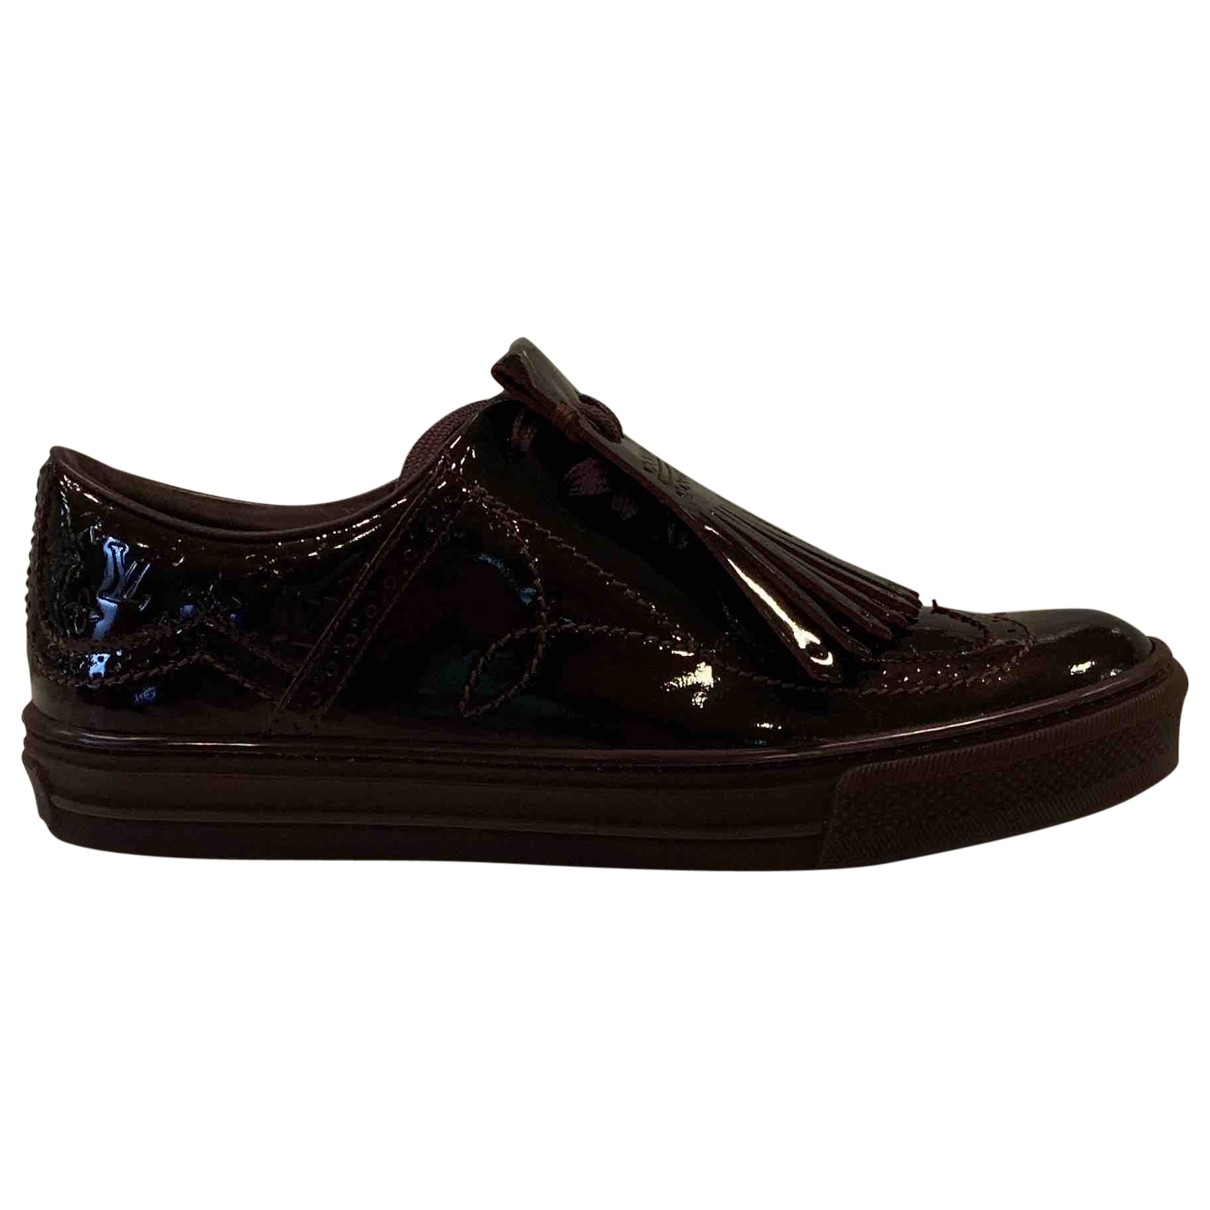 Louis Vuitton \N Burgundy Patent leather Trainers for Women 38 EU